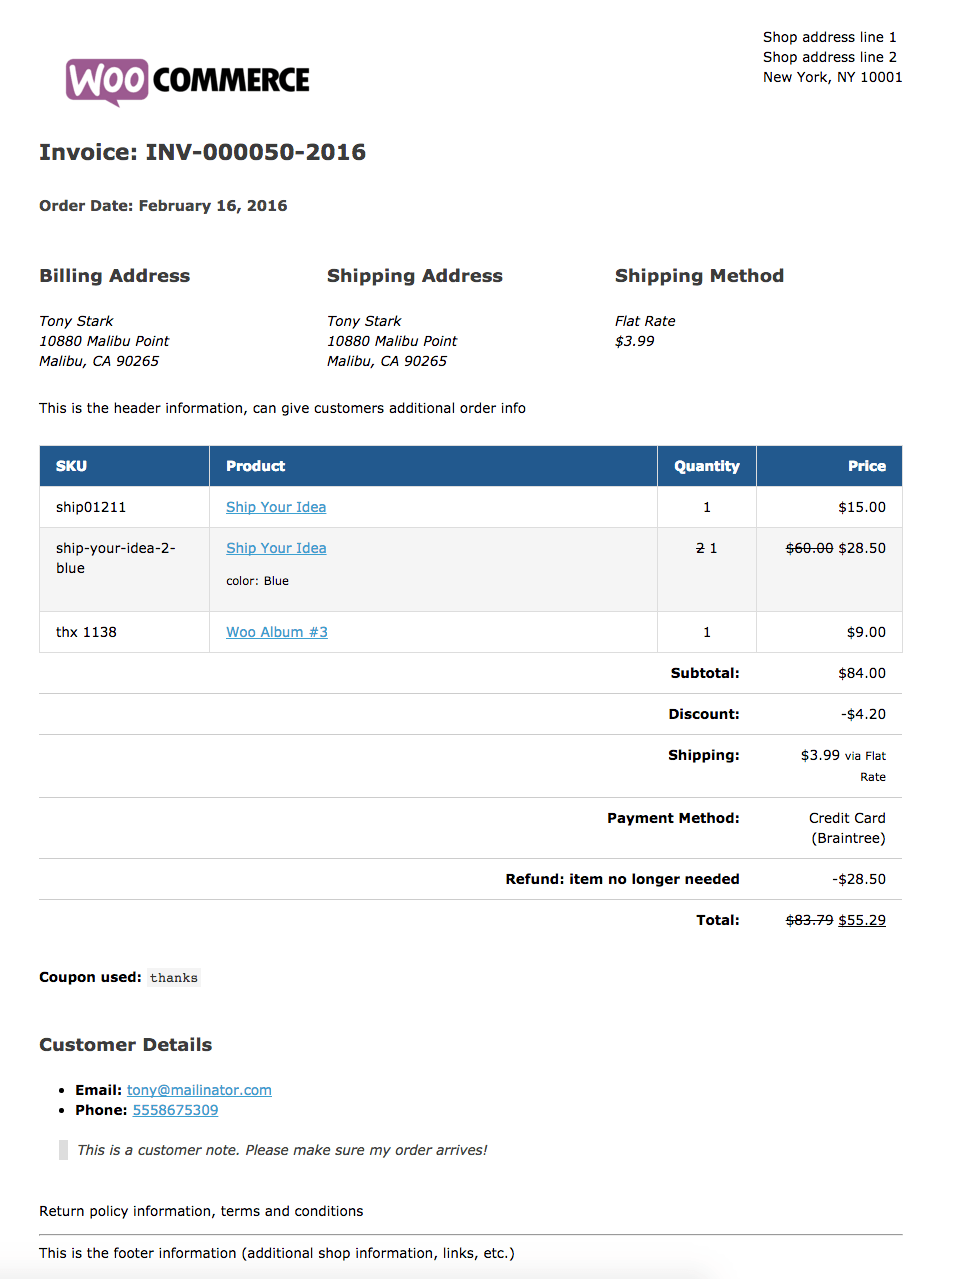 Reliefworkersus  Inspiring Print Invoices Amp Packing Lists  Woocommerce With Interesting View A Sample Invoice  With Captivating Automated Invoice Also How To Create An Invoice In Microsoft Word In Addition Invoice Net And How To Do Invoicing As Well As Model Invoice Format Additionally Export Invoice Format From Woocommercecom With Reliefworkersus  Interesting Print Invoices Amp Packing Lists  Woocommerce With Captivating View A Sample Invoice  And Inspiring Automated Invoice Also How To Create An Invoice In Microsoft Word In Addition Invoice Net From Woocommercecom